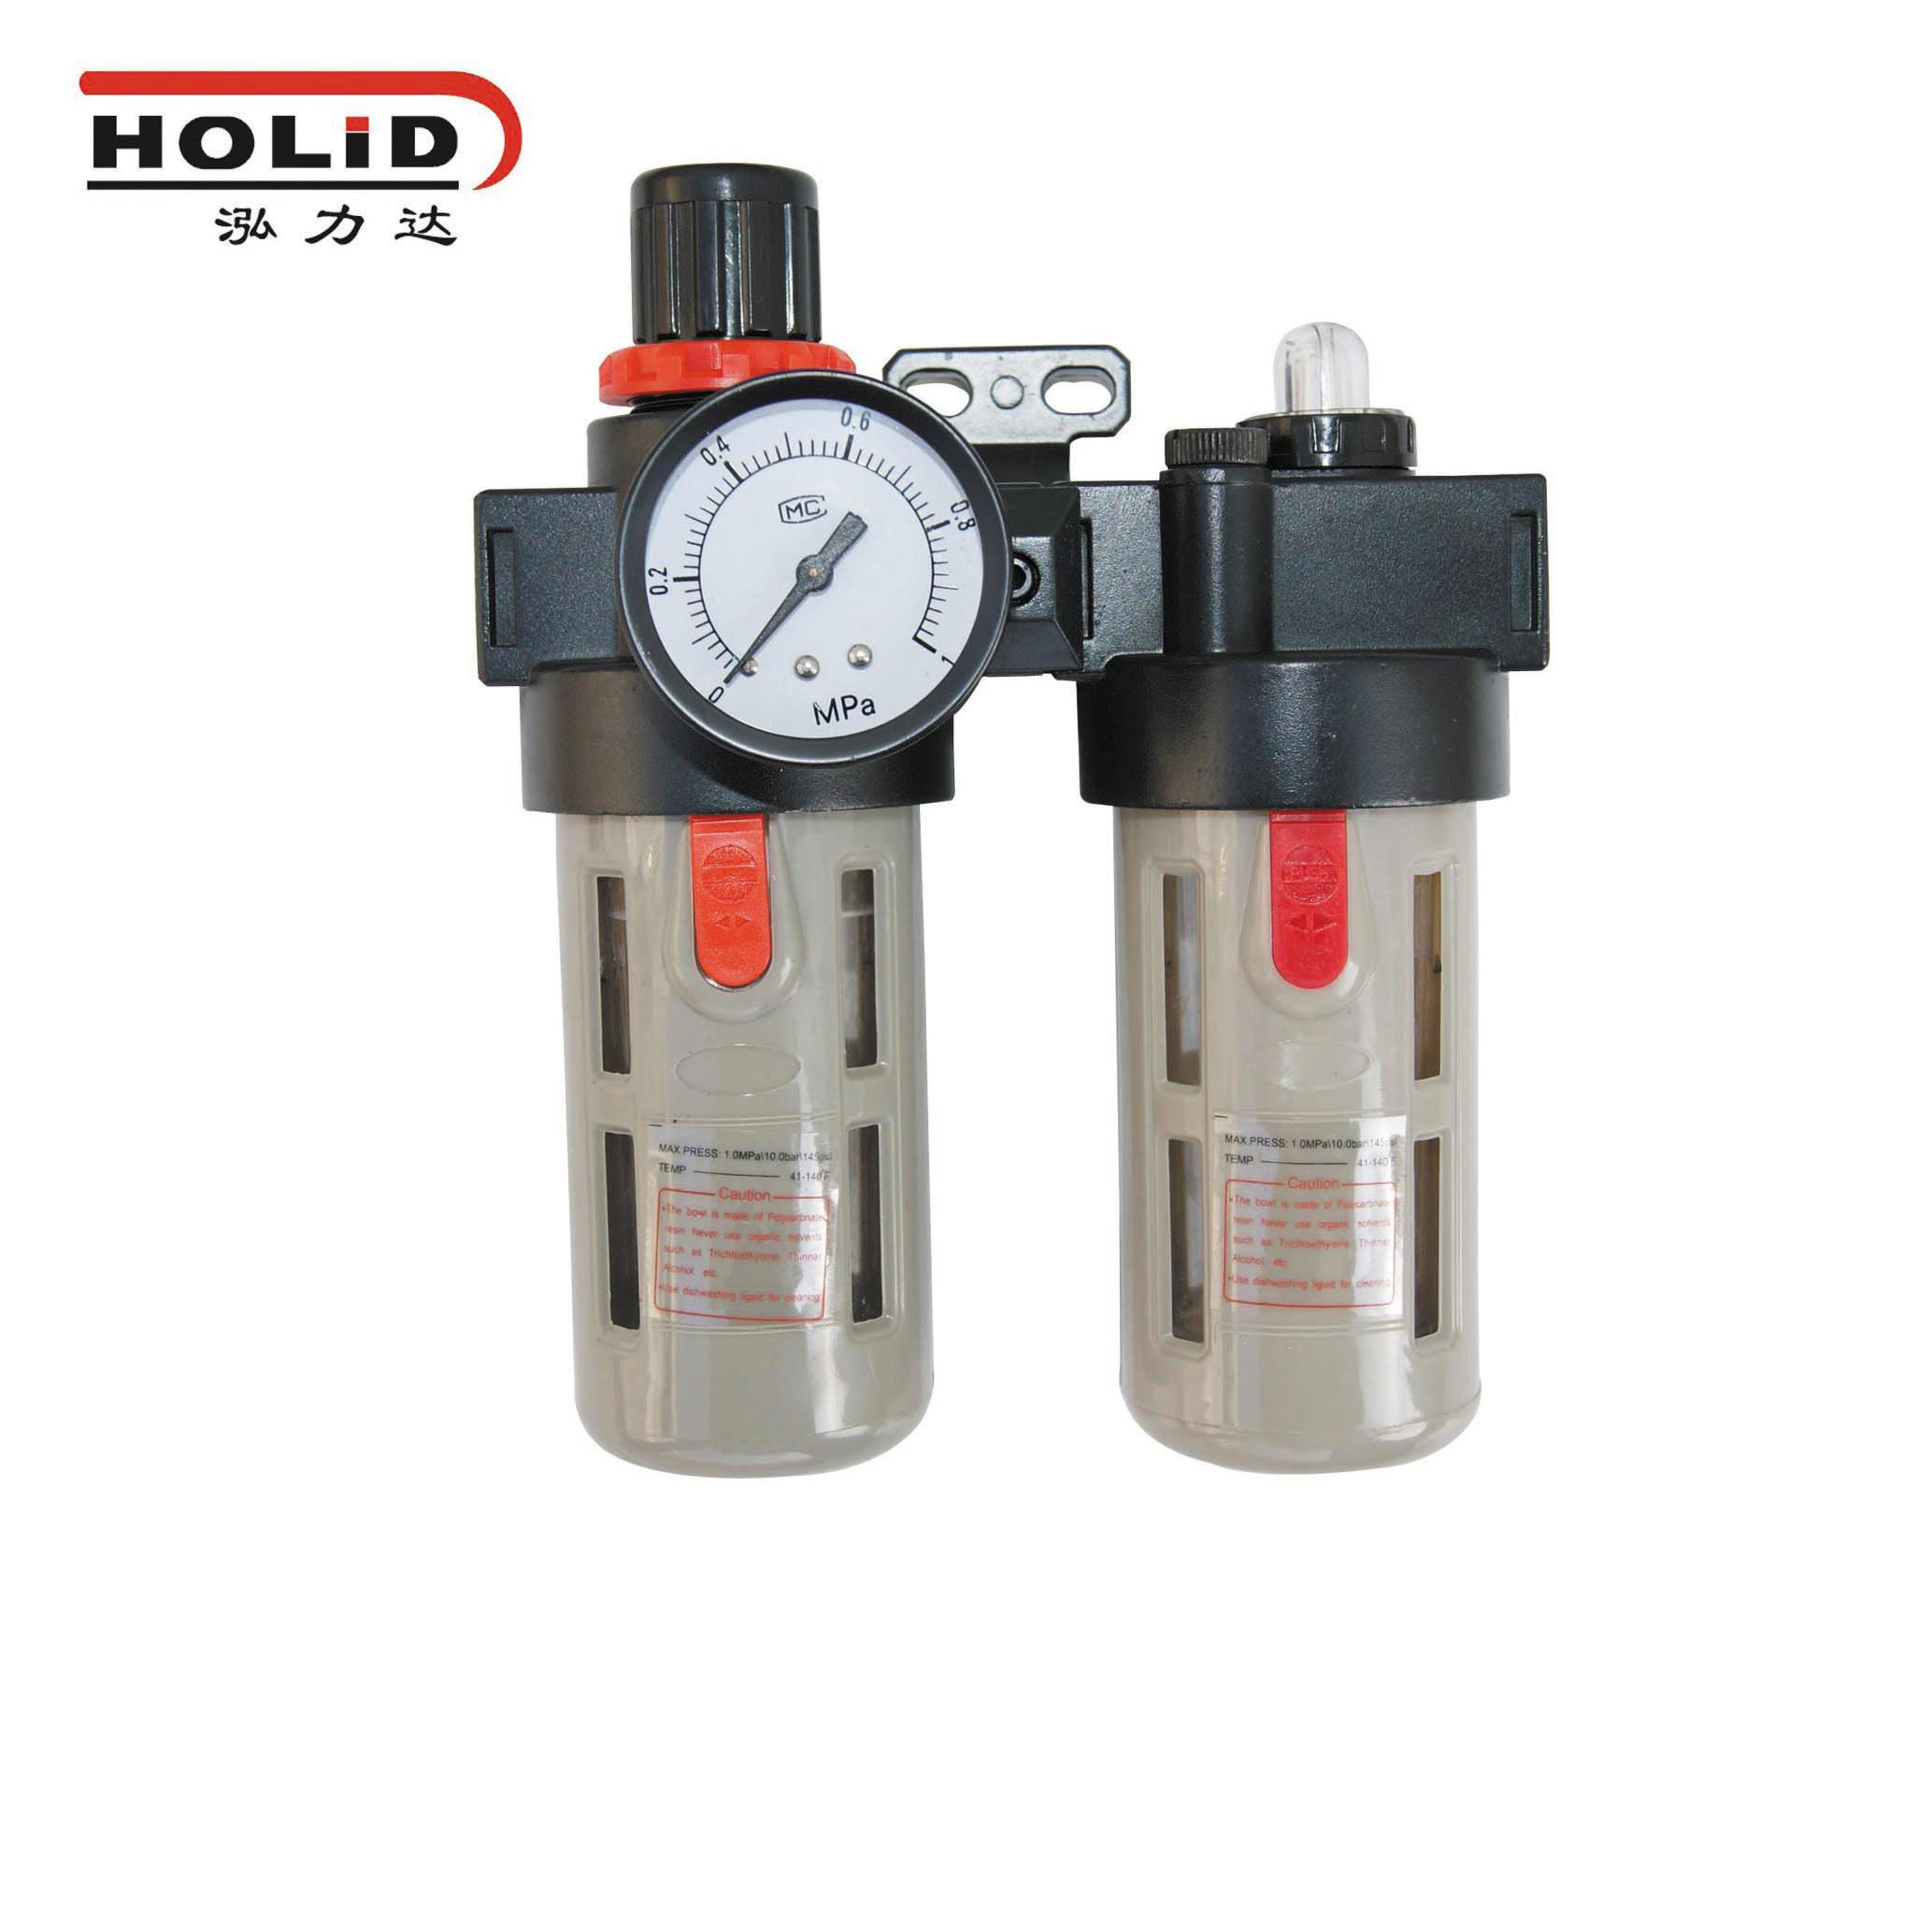 filter regulator can automatically drain with the built